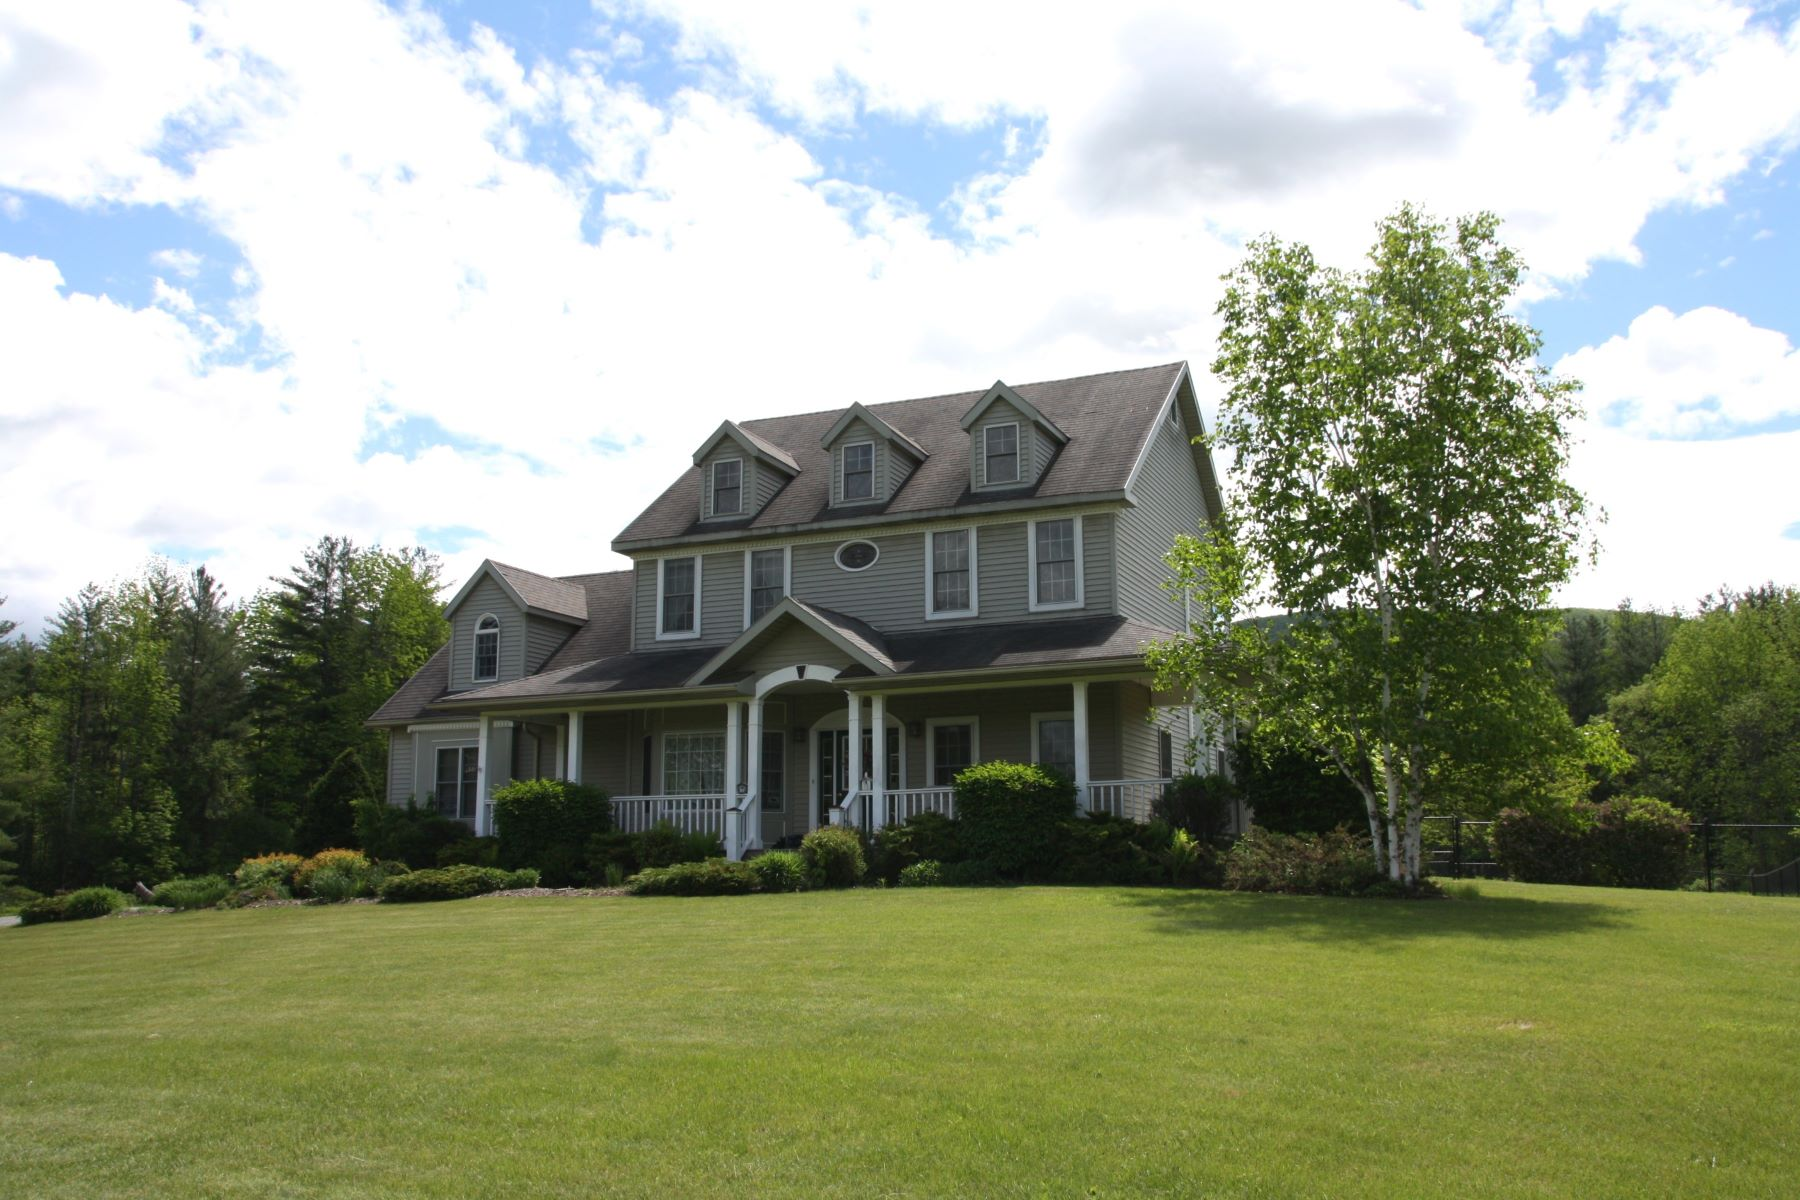 Single Family Home for Sale at Exceptional Country Home 450 Haven Hill Rd Wallingford, Vermont, 05773 United States